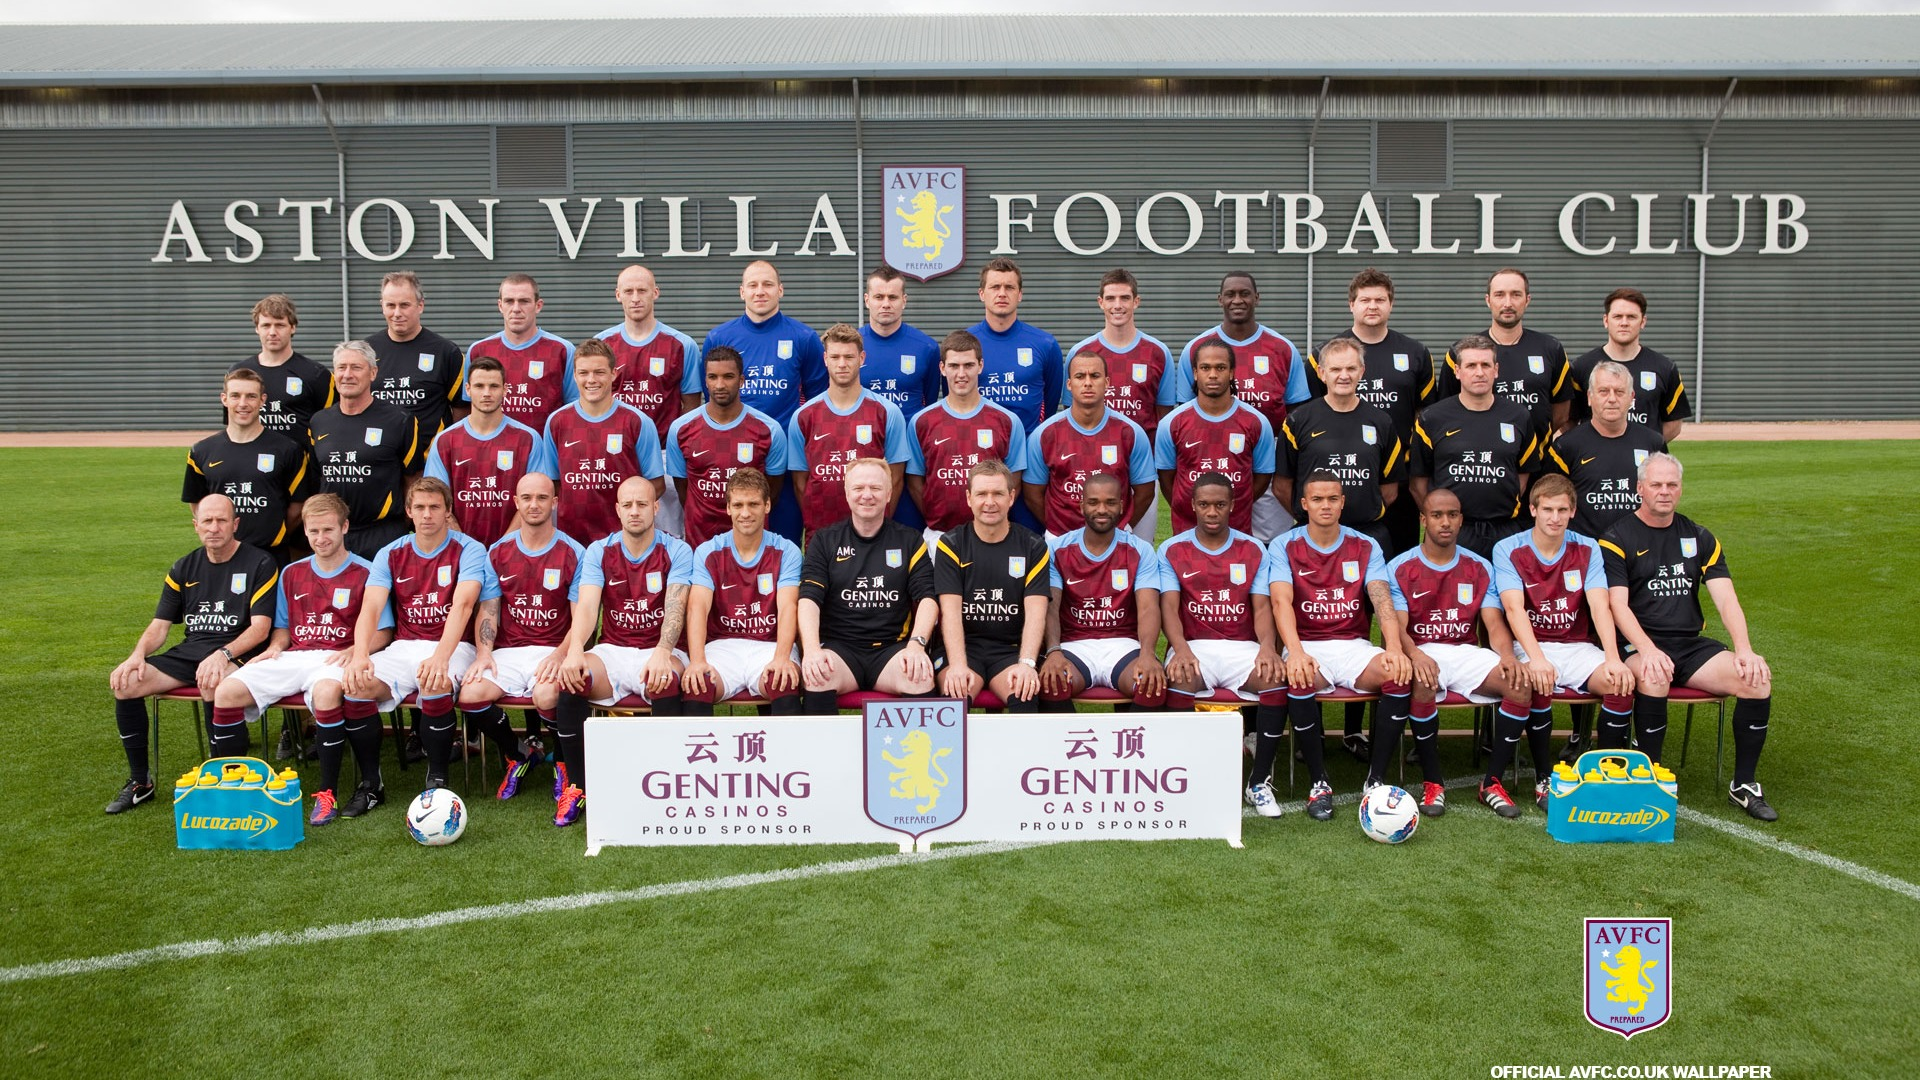 Aston Villa Football Club Desktop Wallpaper-1920x1080